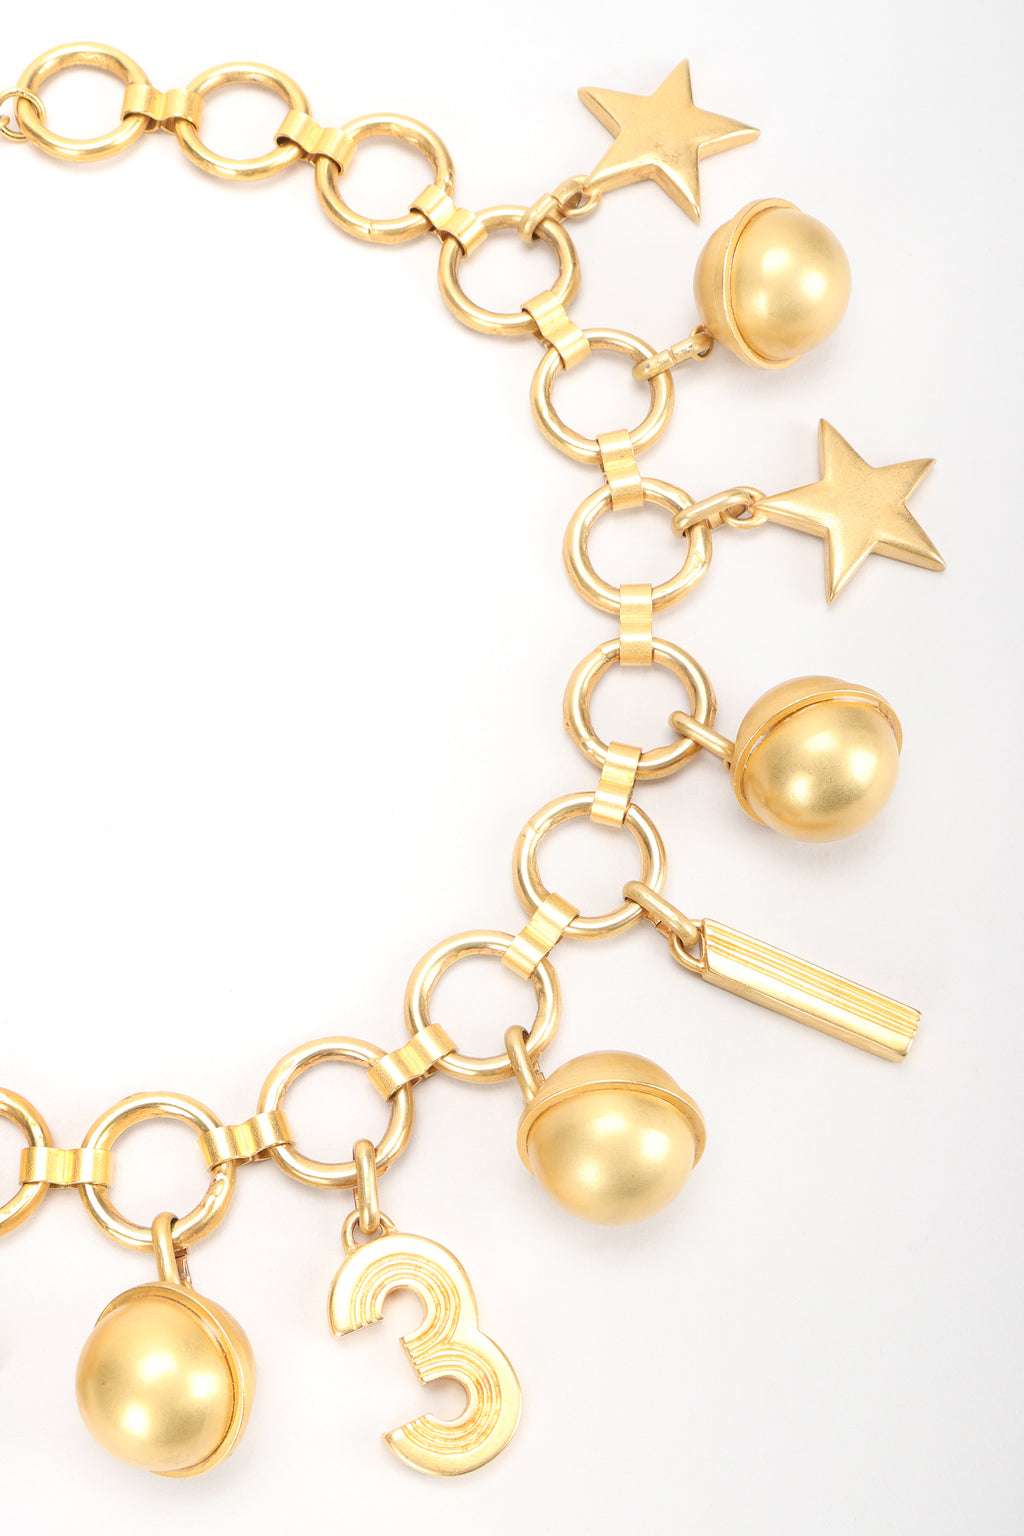 Recess Designer Consignment Vintage Escada Laurél Star Charm Globe 31 Collar Necklace Los Angeles Resale